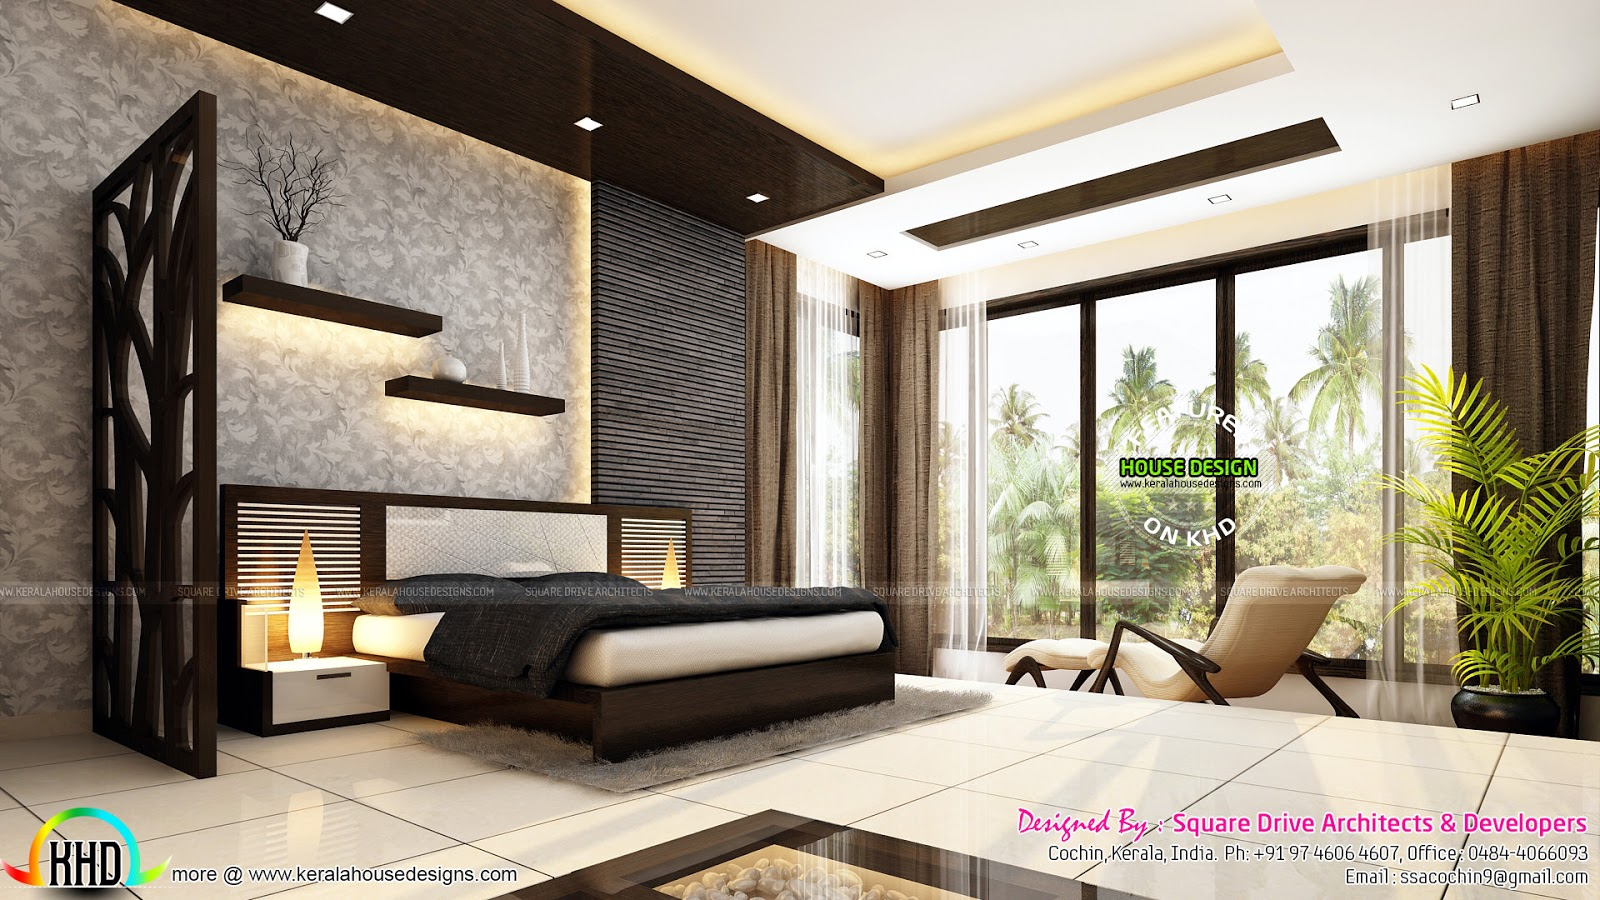 Very beautiful modern interior designs kerala home for Beautiful contemporary bedrooms